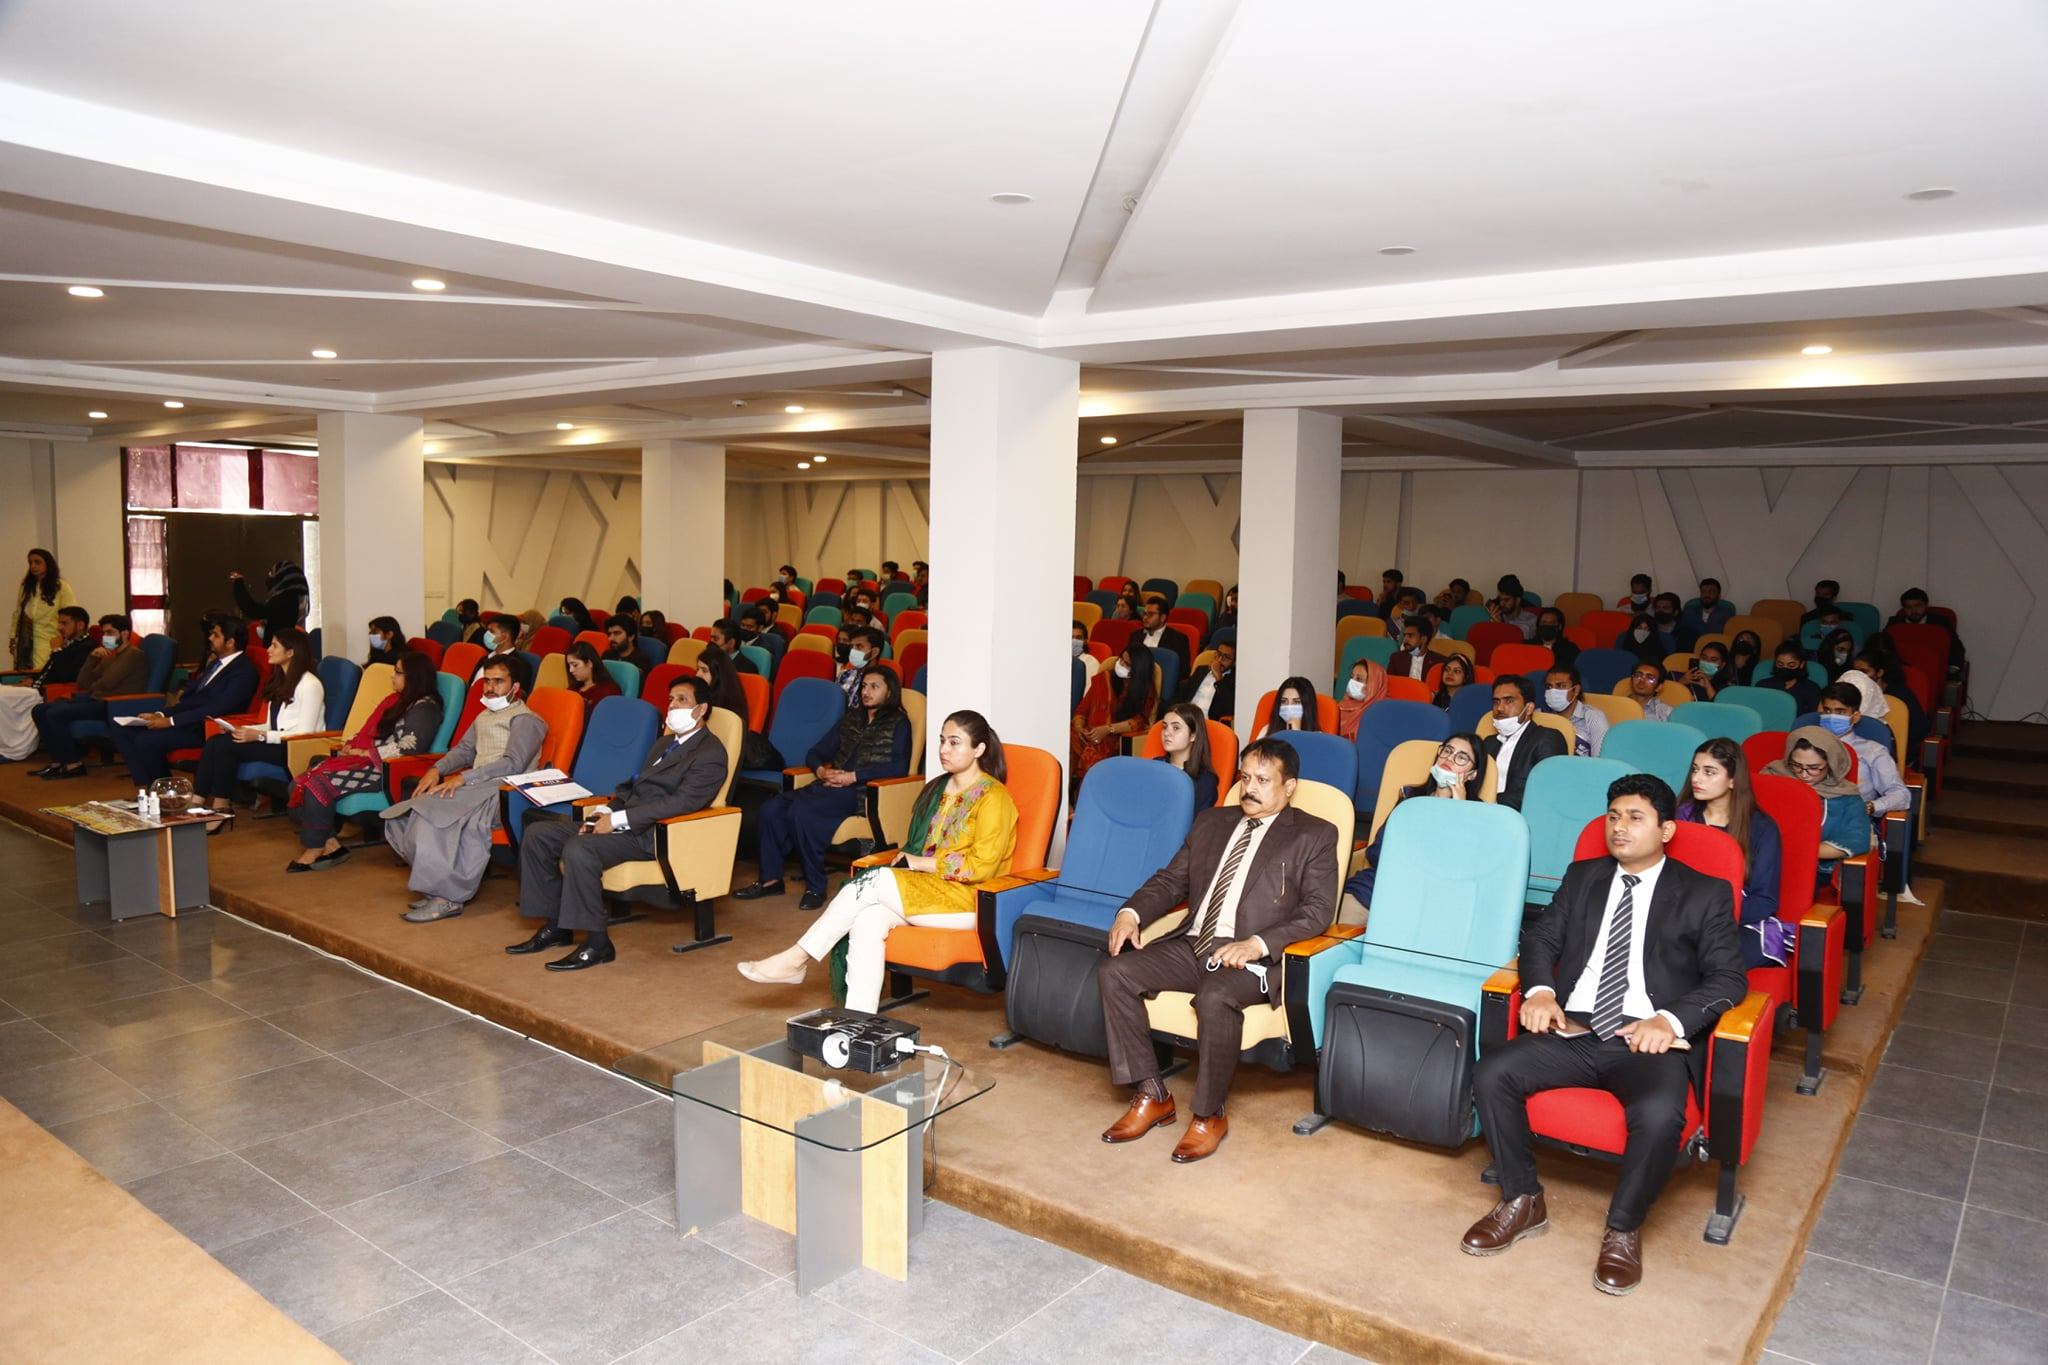 HND students attended Islamabad chamber of commerce's seminar